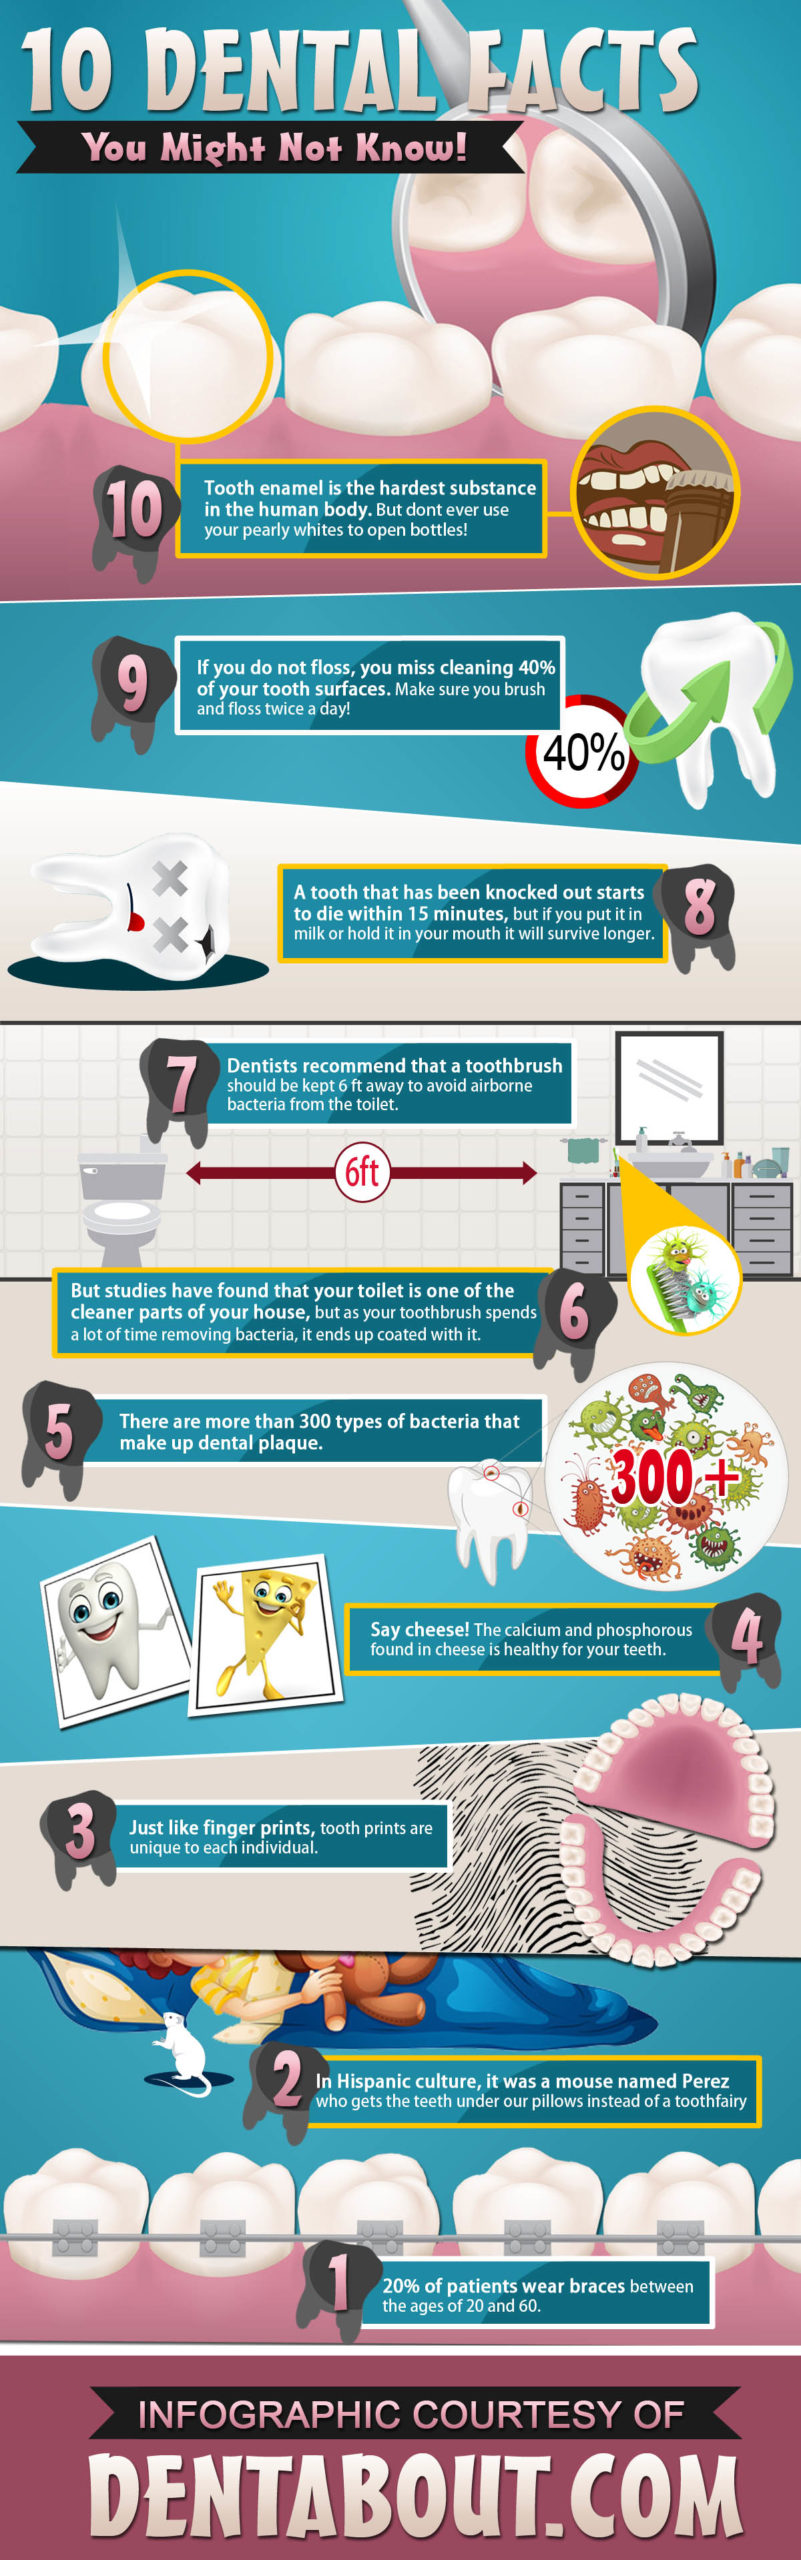 10-Dental-Facts